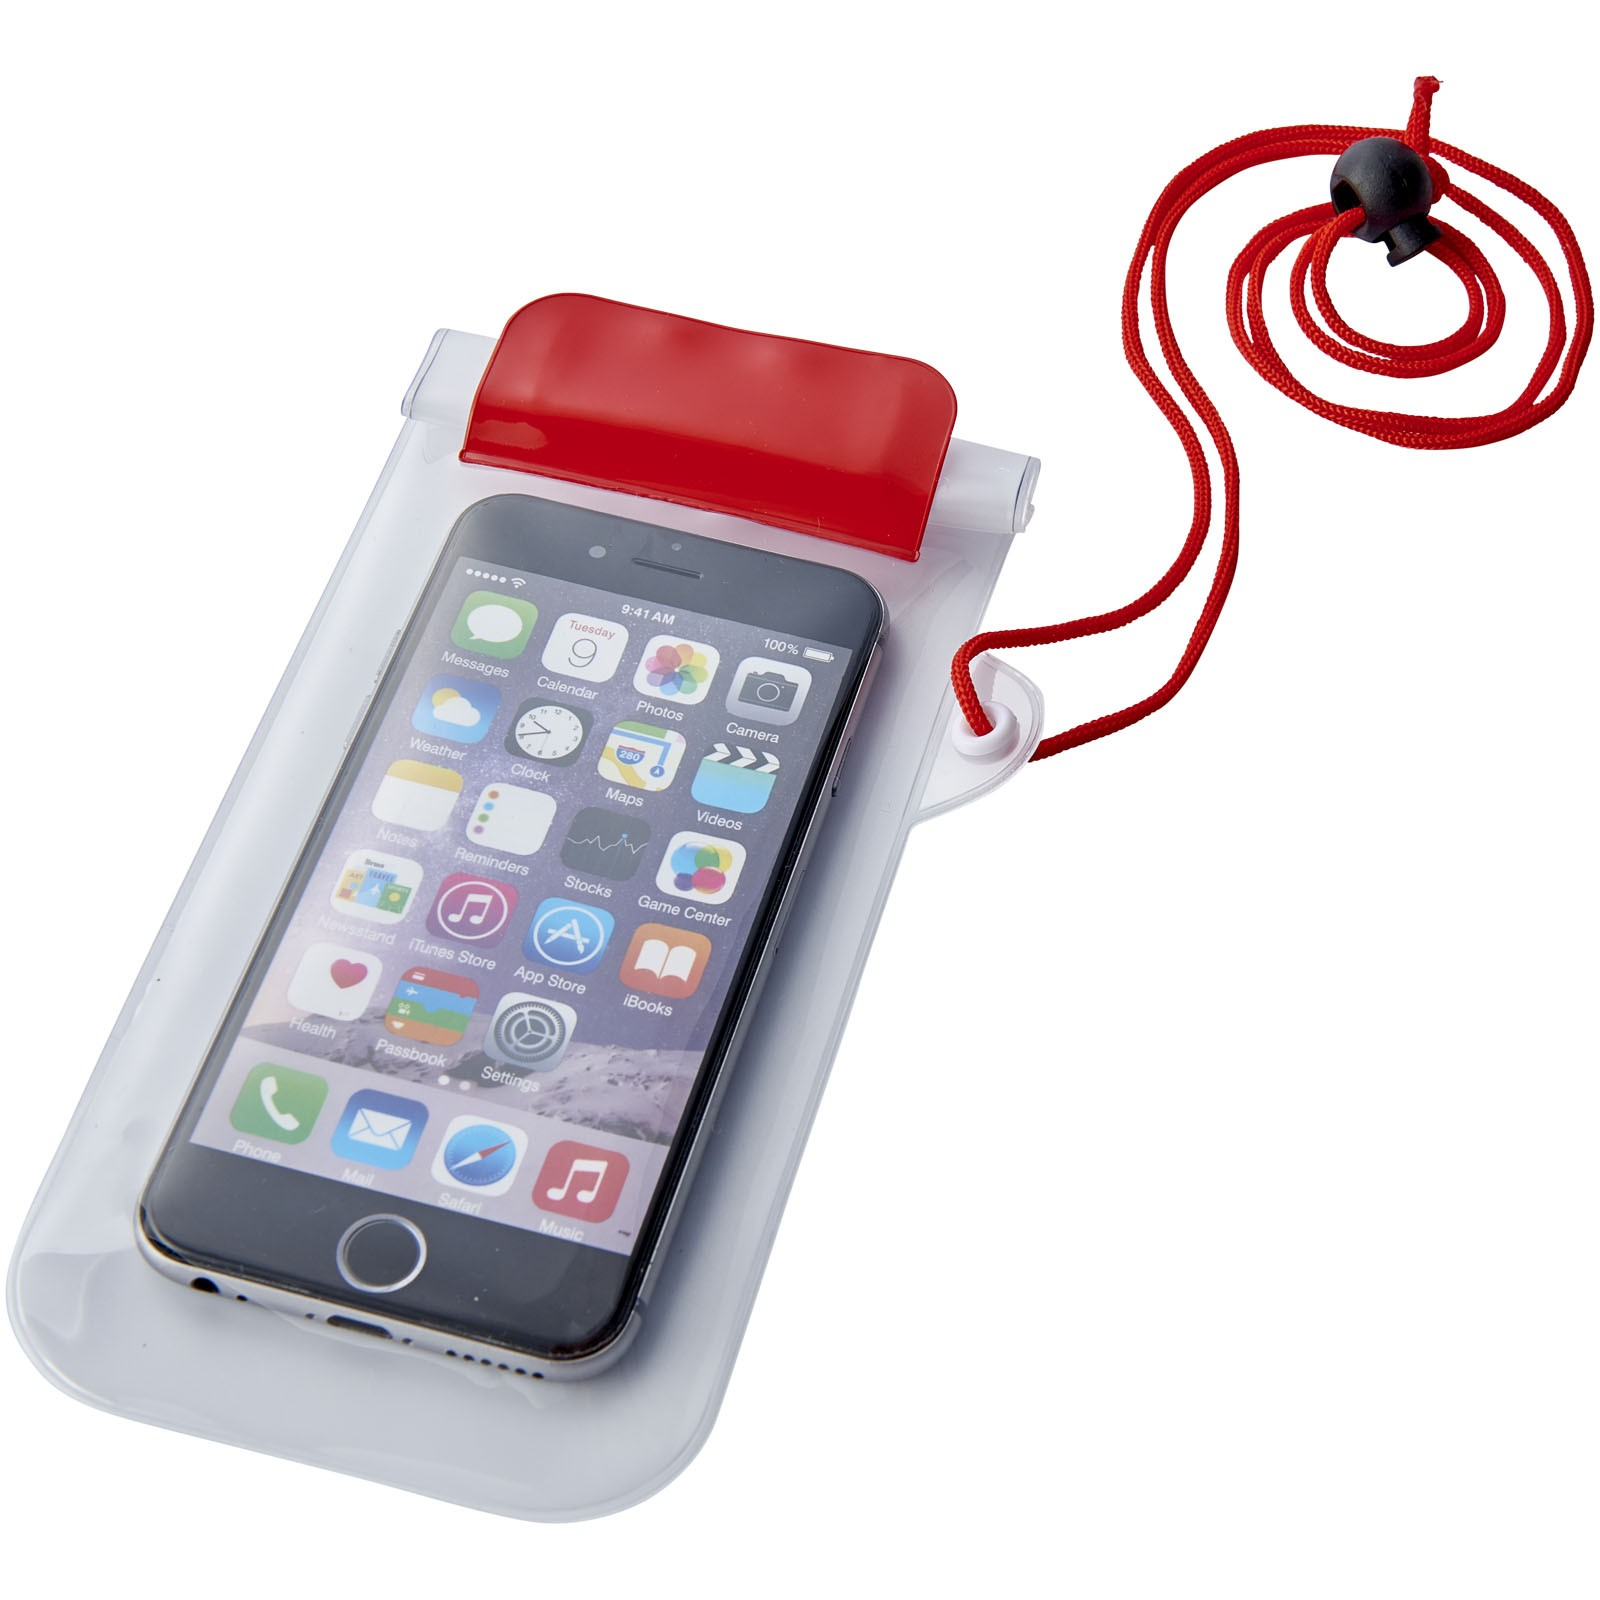 Mambo waterproof smartphone storage pouch - Red